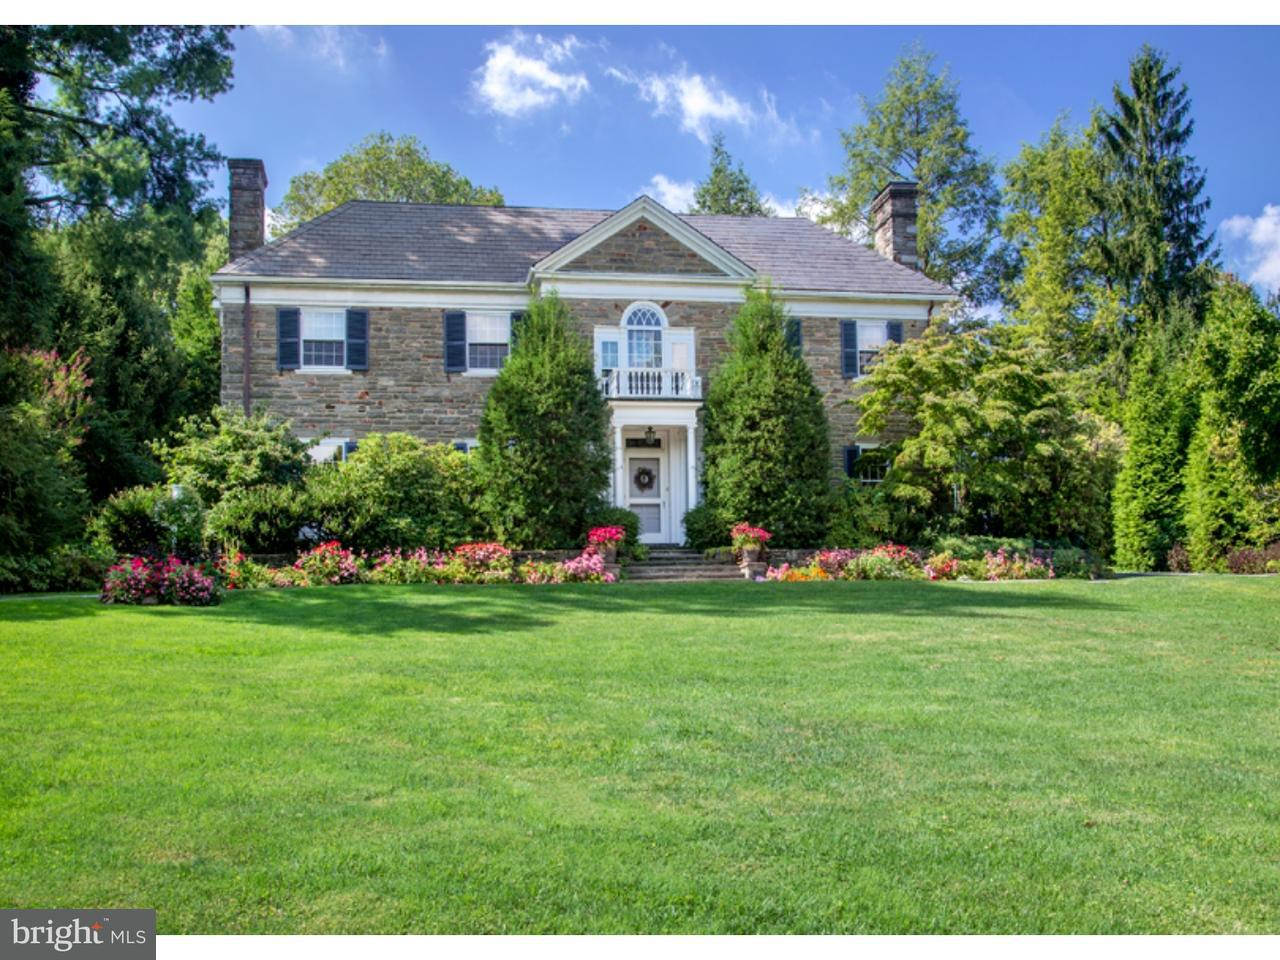 234 Cheswold Hill Road Haverford, PA 19041